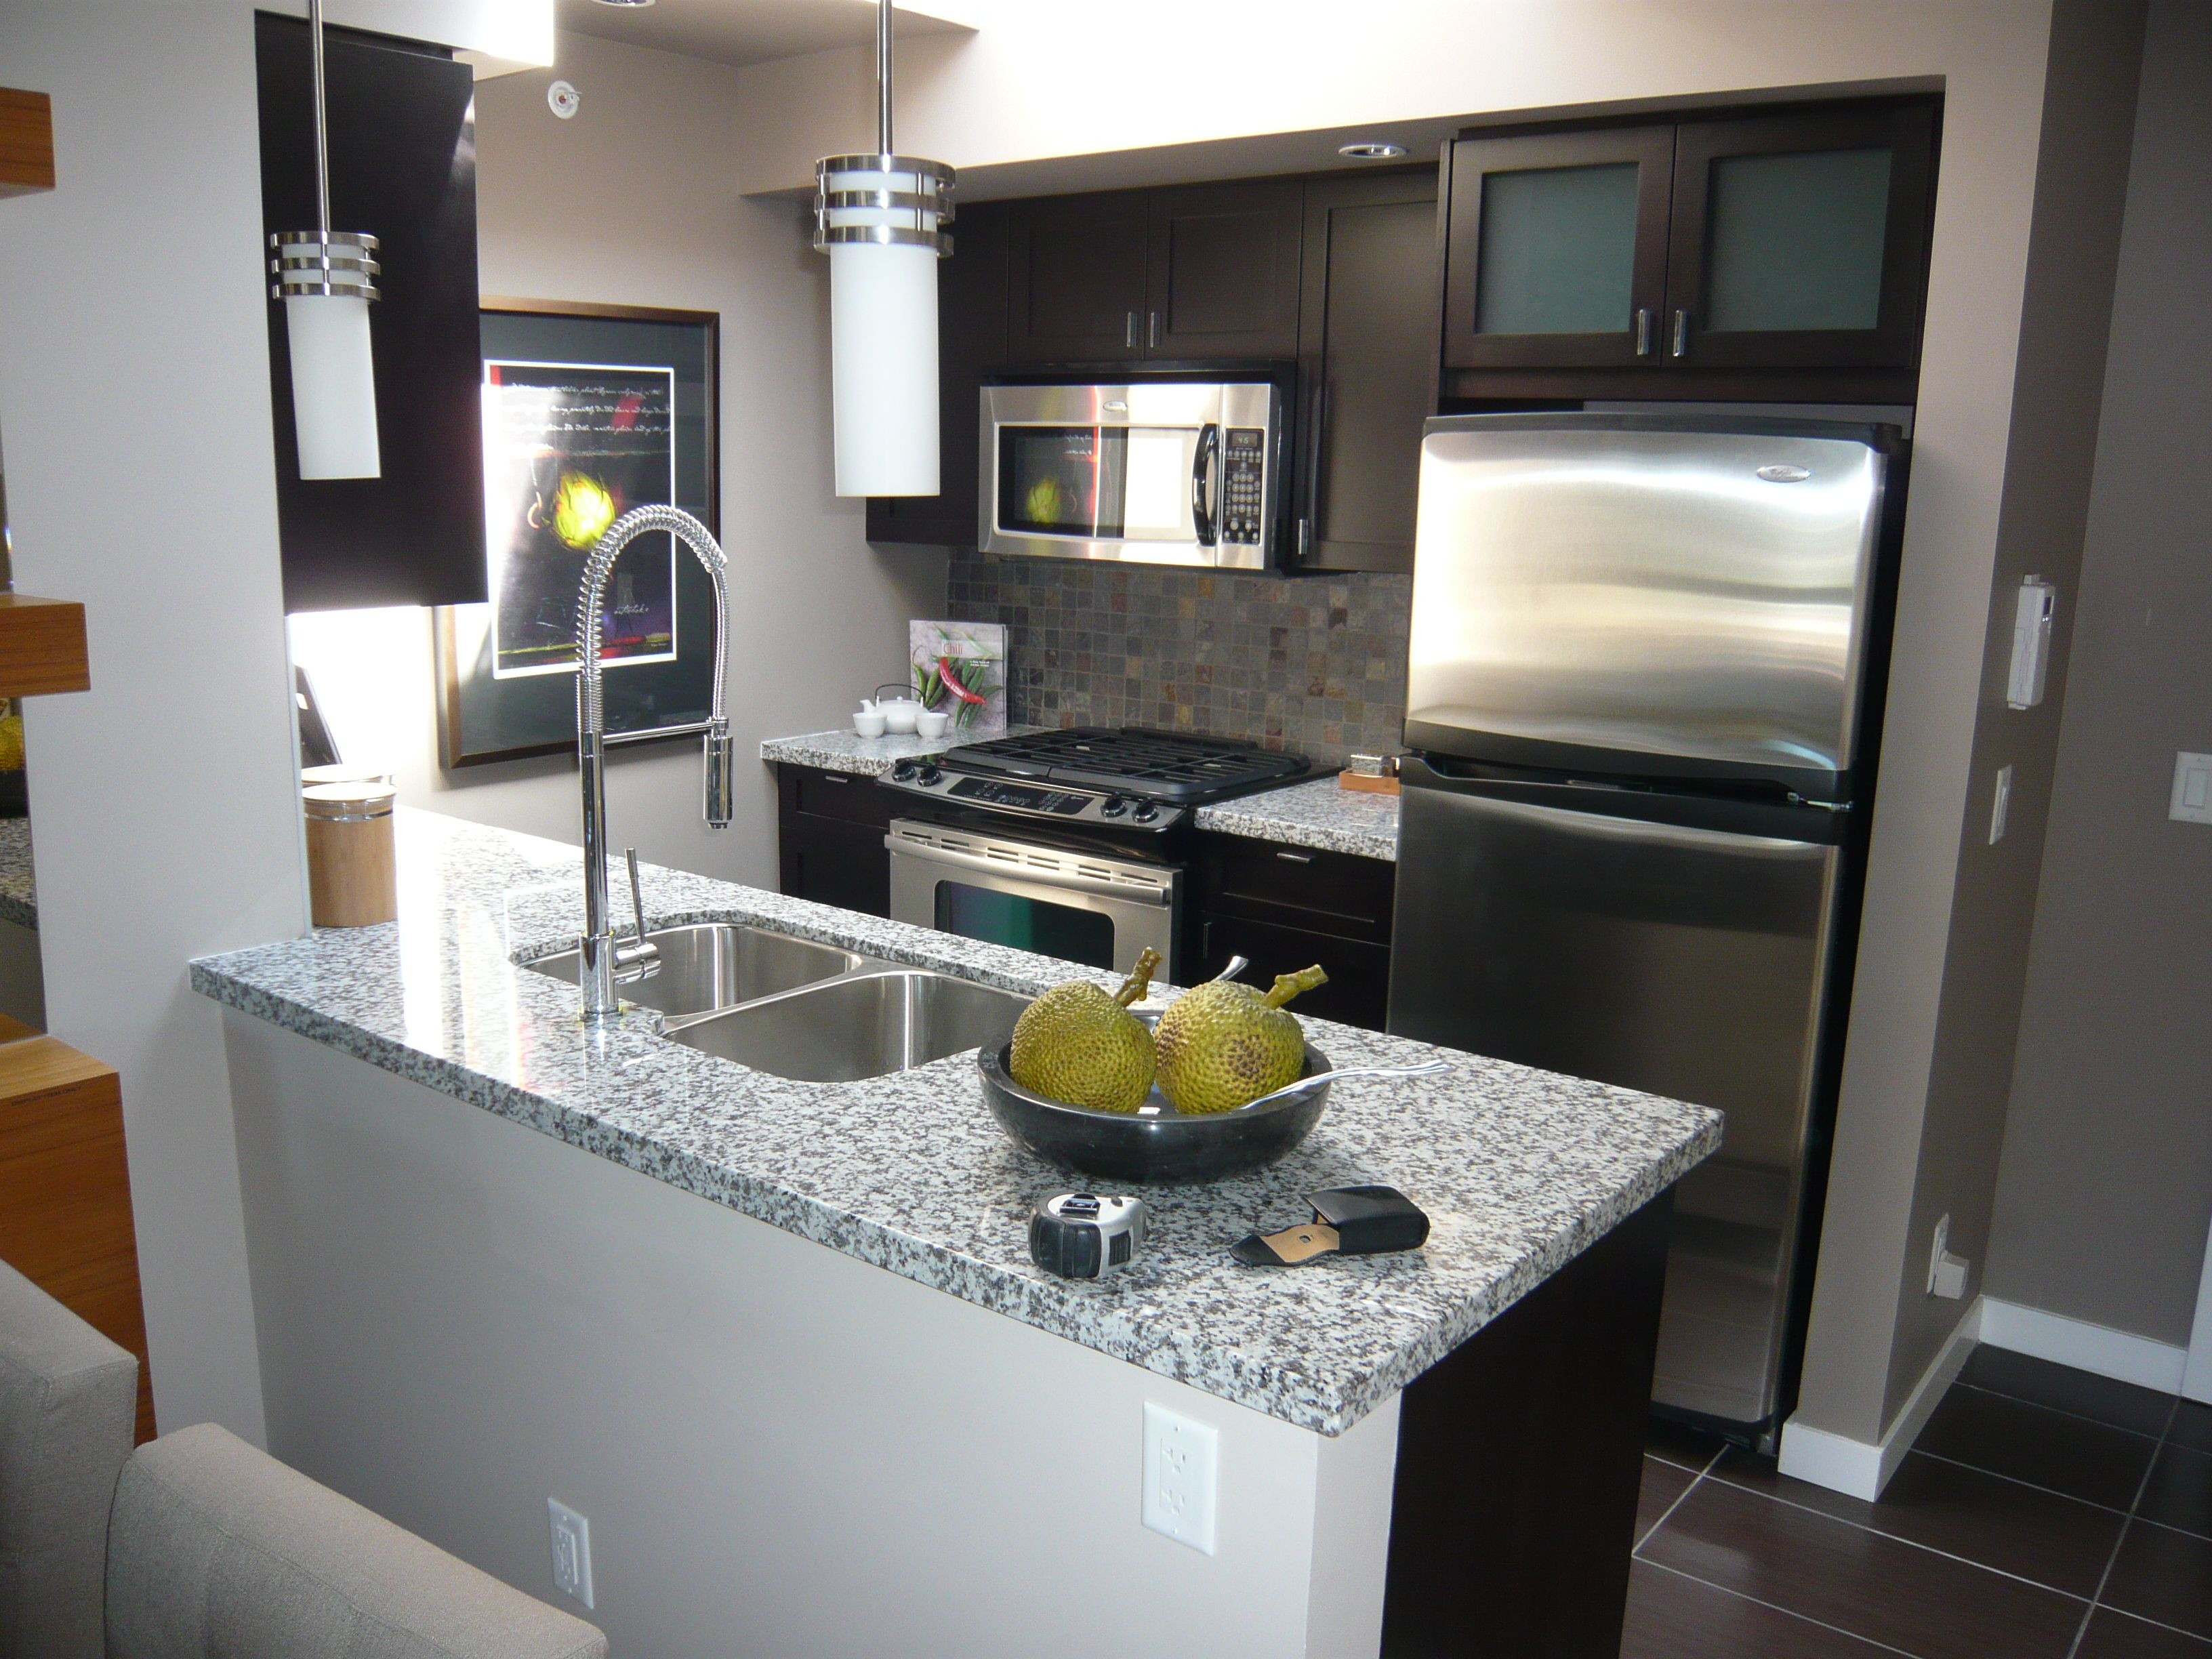 Pin by Northern Concepts on Kitchens   Small condo kitchen ...